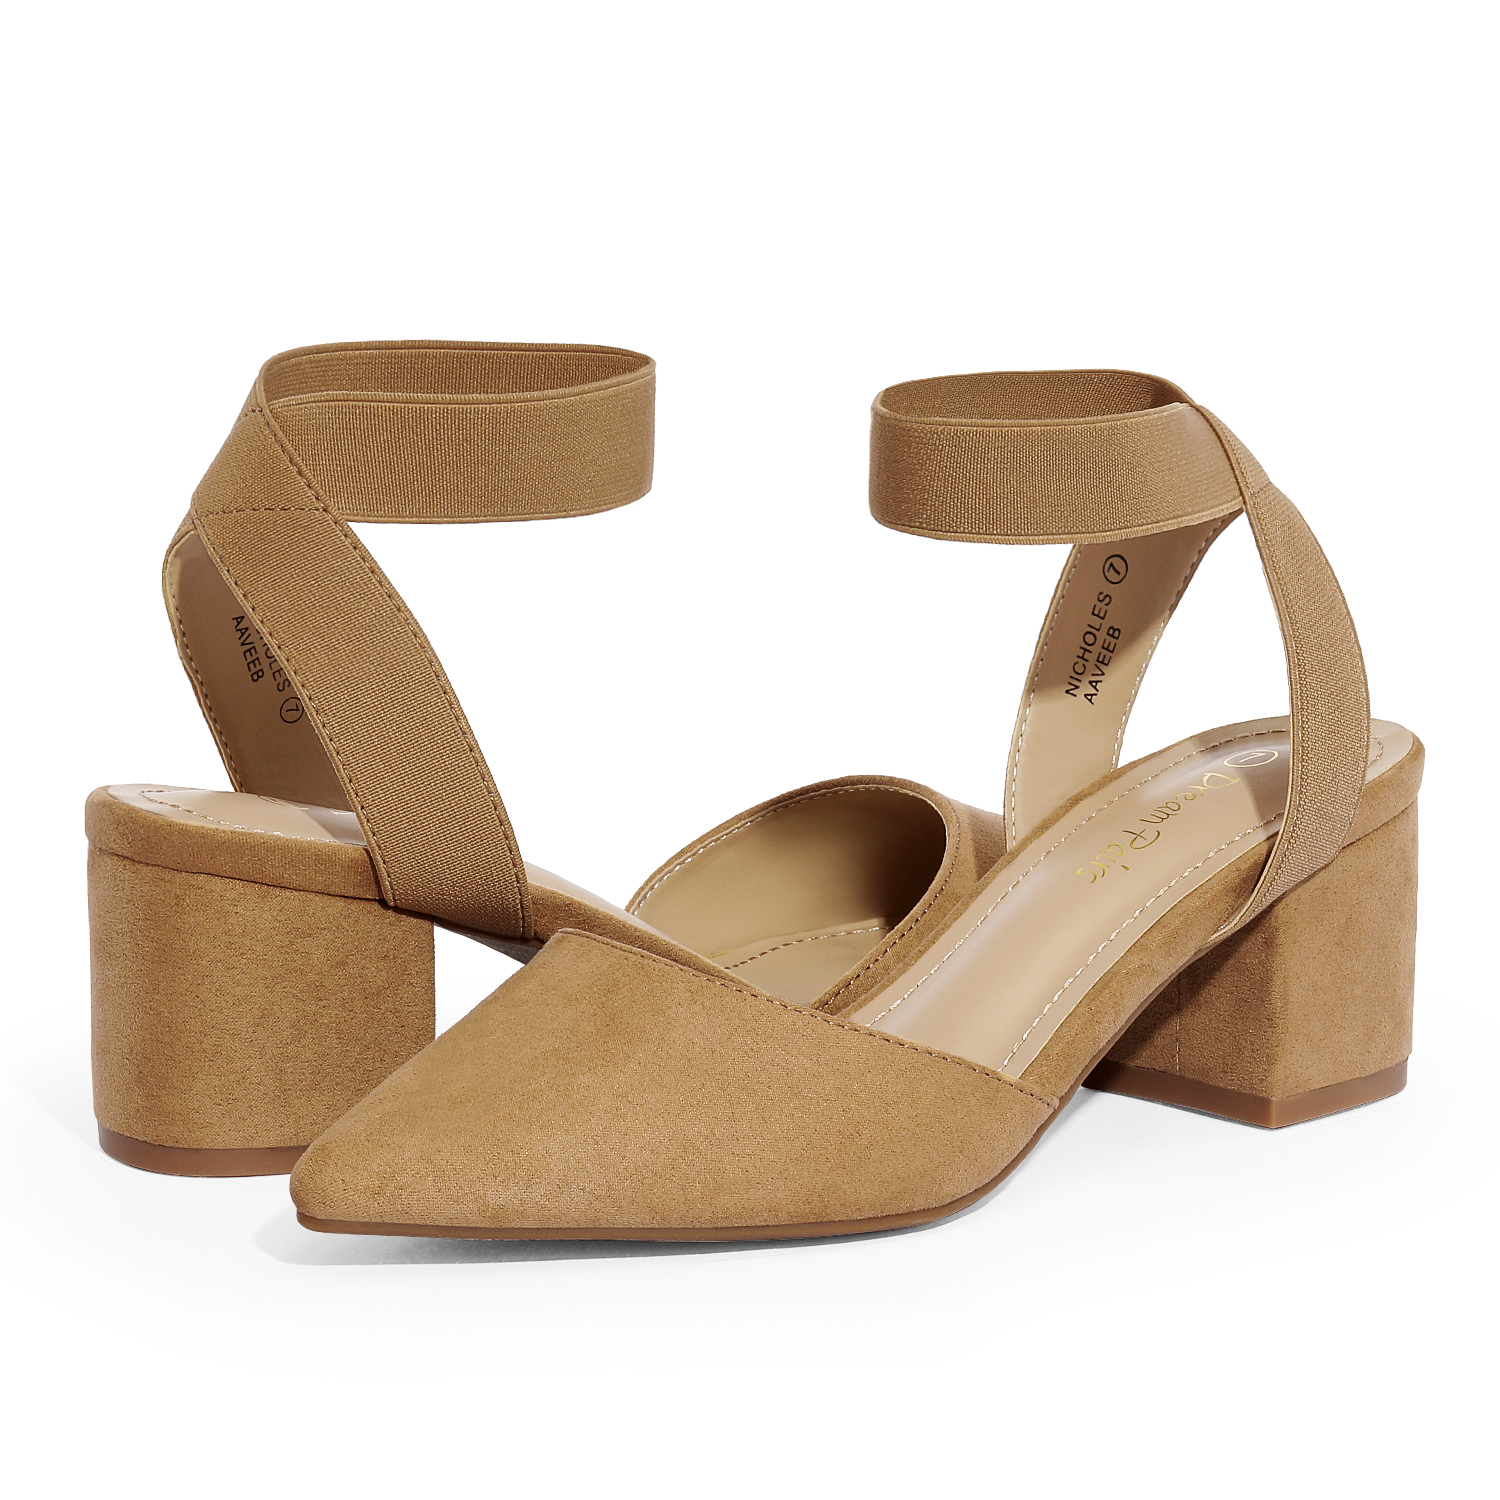 thumbnail 21 - Women-039-s-Elastic-Ankle-Strap-Pointed-Toe-Pump-Shoes-Low-Chunky-Heel-Dress-Pumps